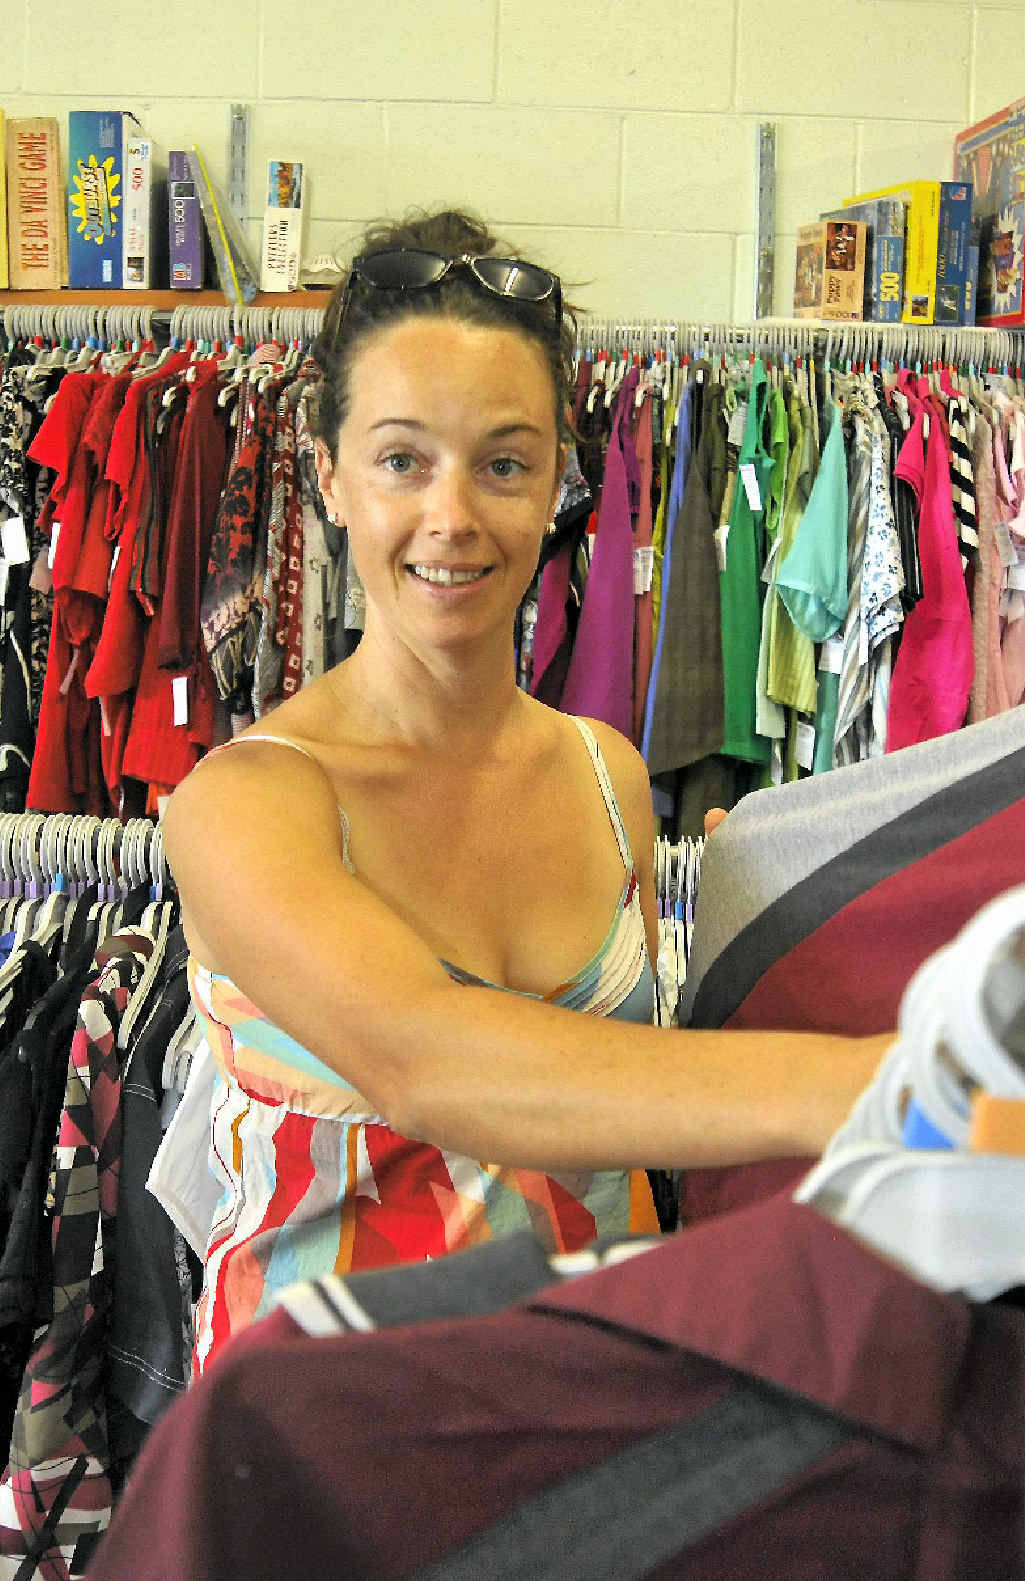 Kirsten Brown checks out the school uniforms at the Lifeline outlet at Toolooa St.